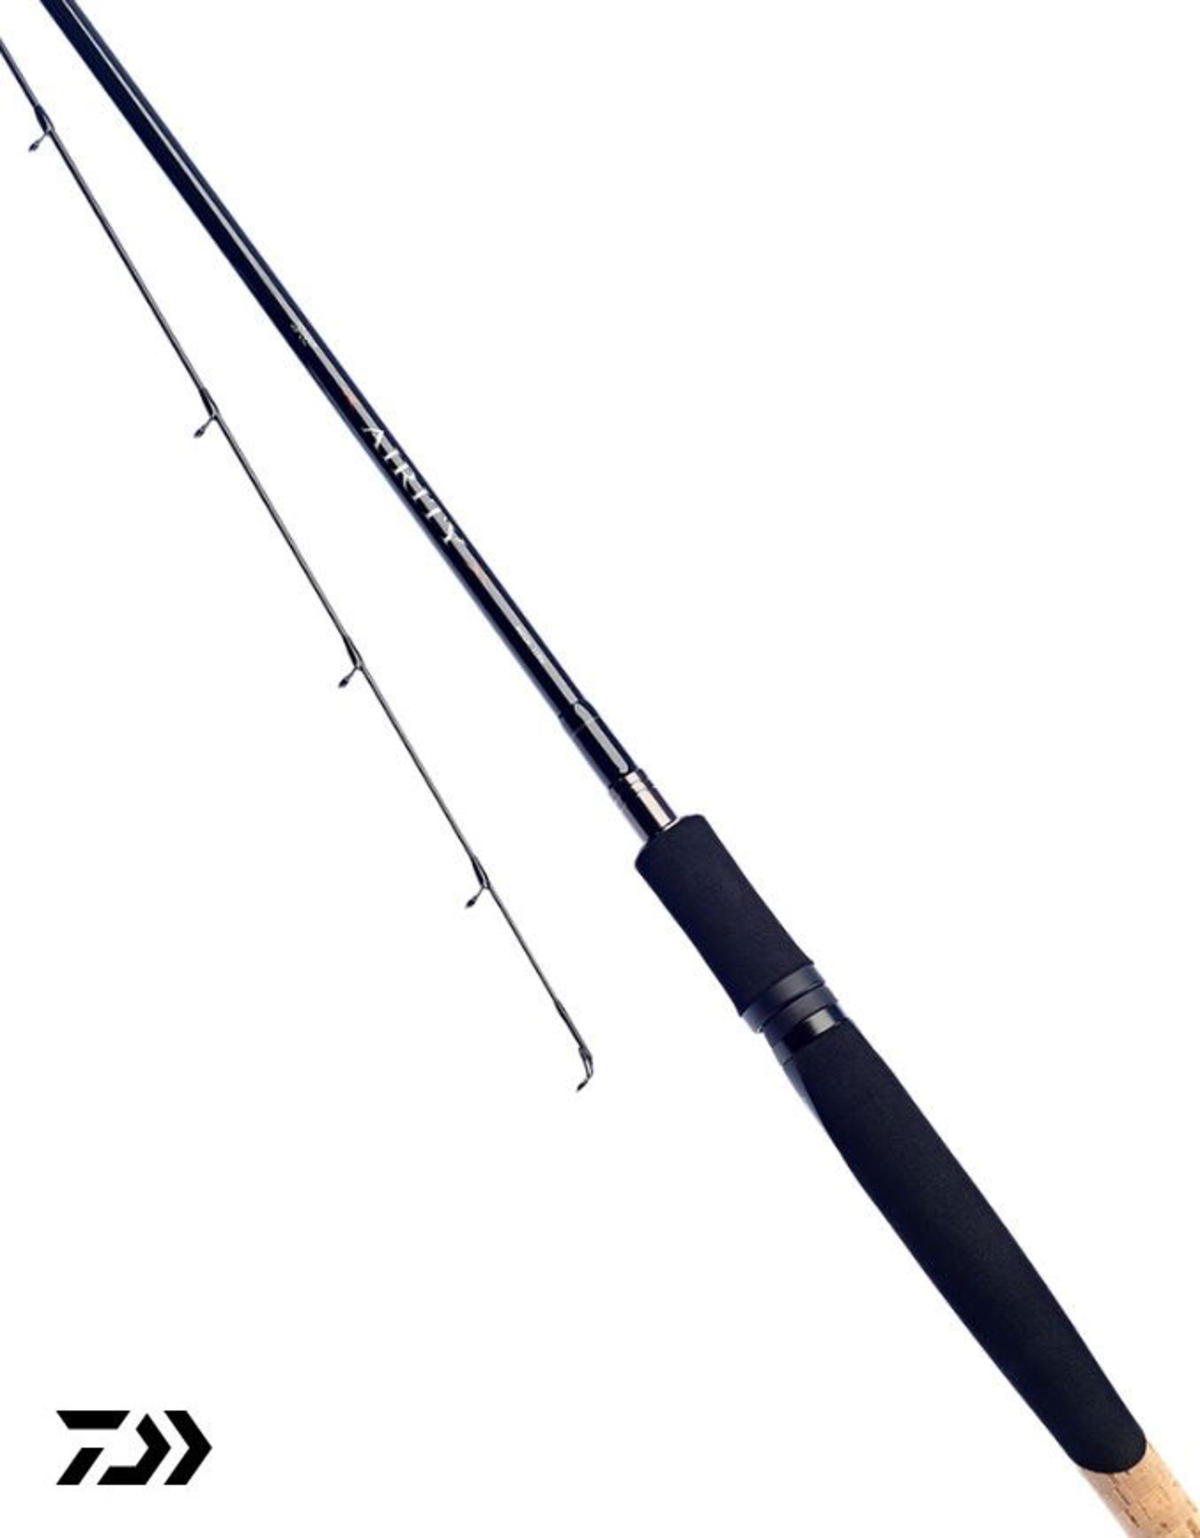 New Daiwa Airity X45 Match Fishing Rods - All Models